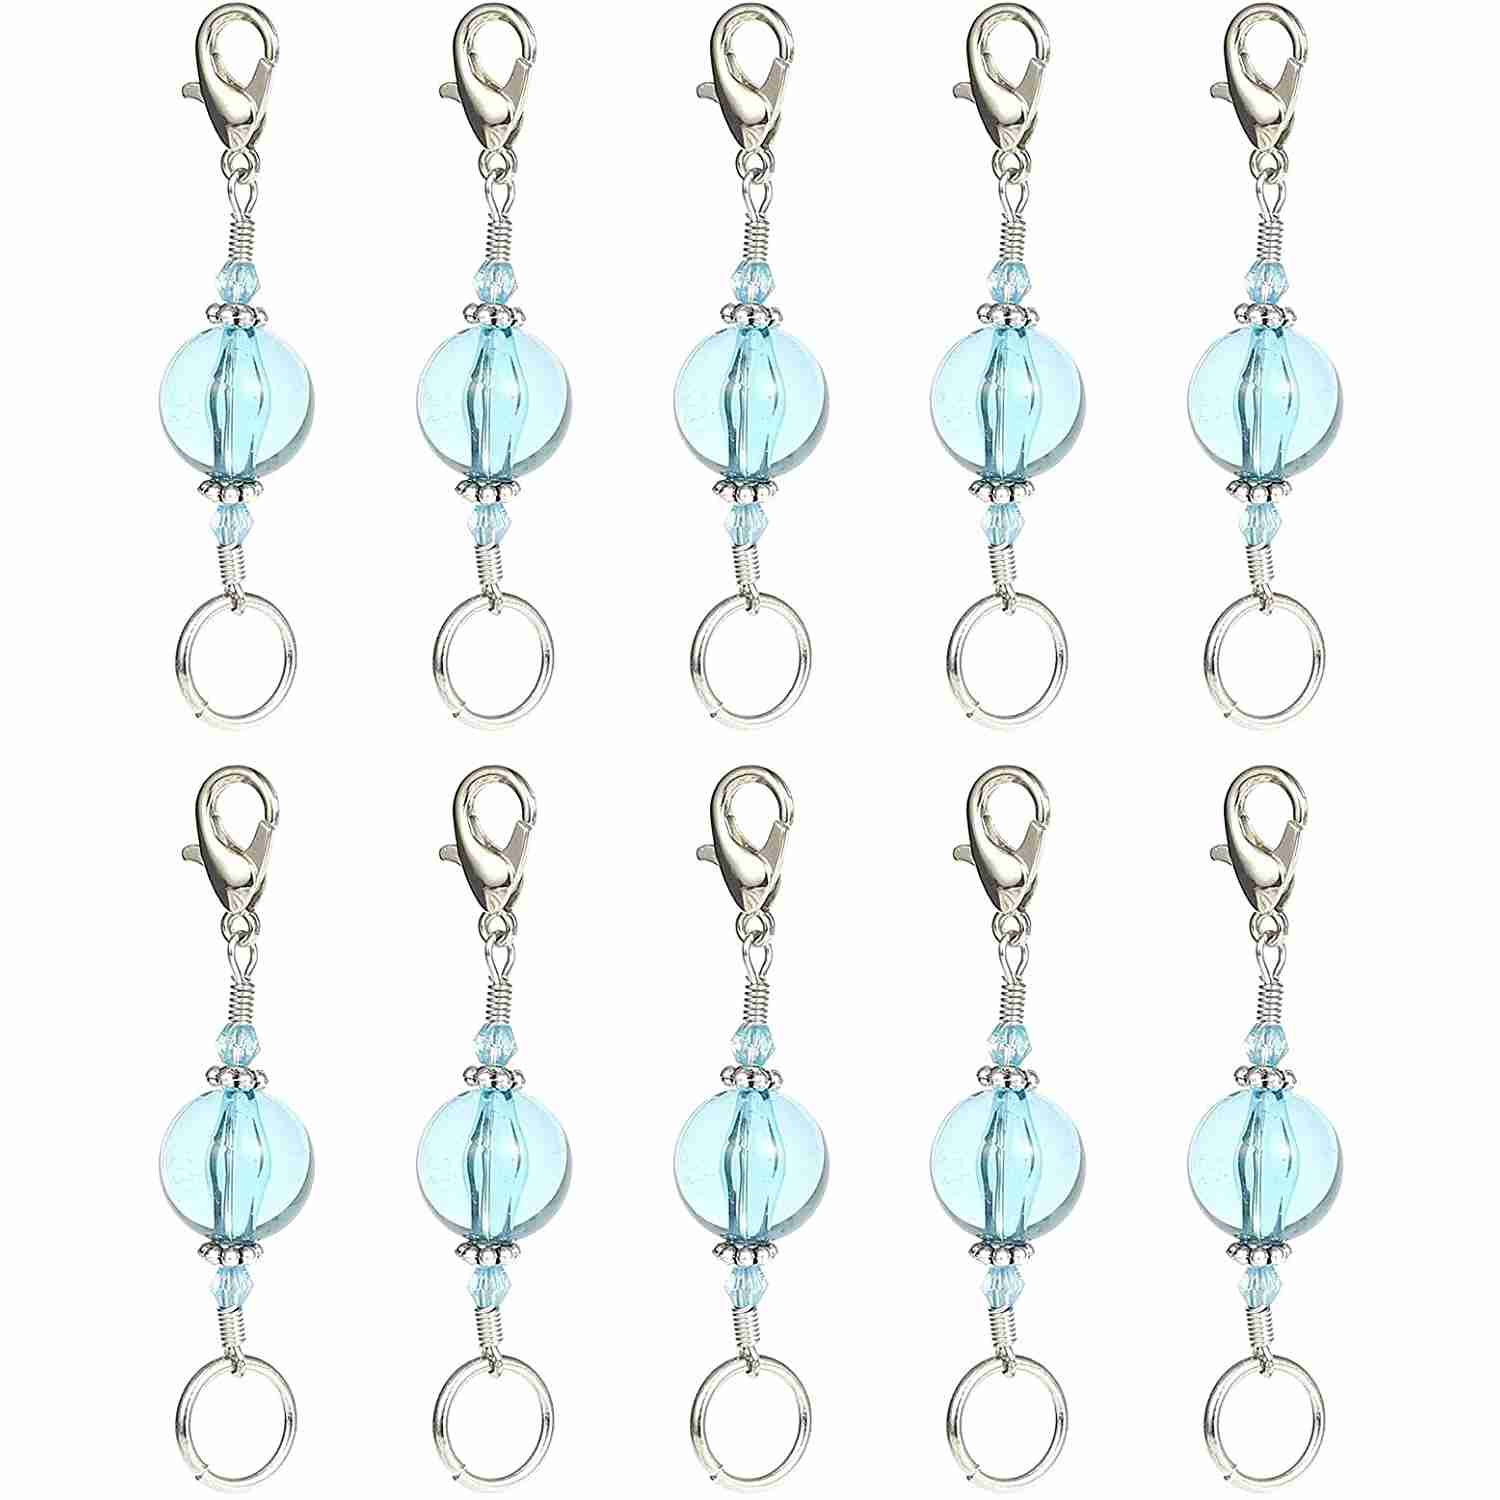 stitch-markers with cash back rebate